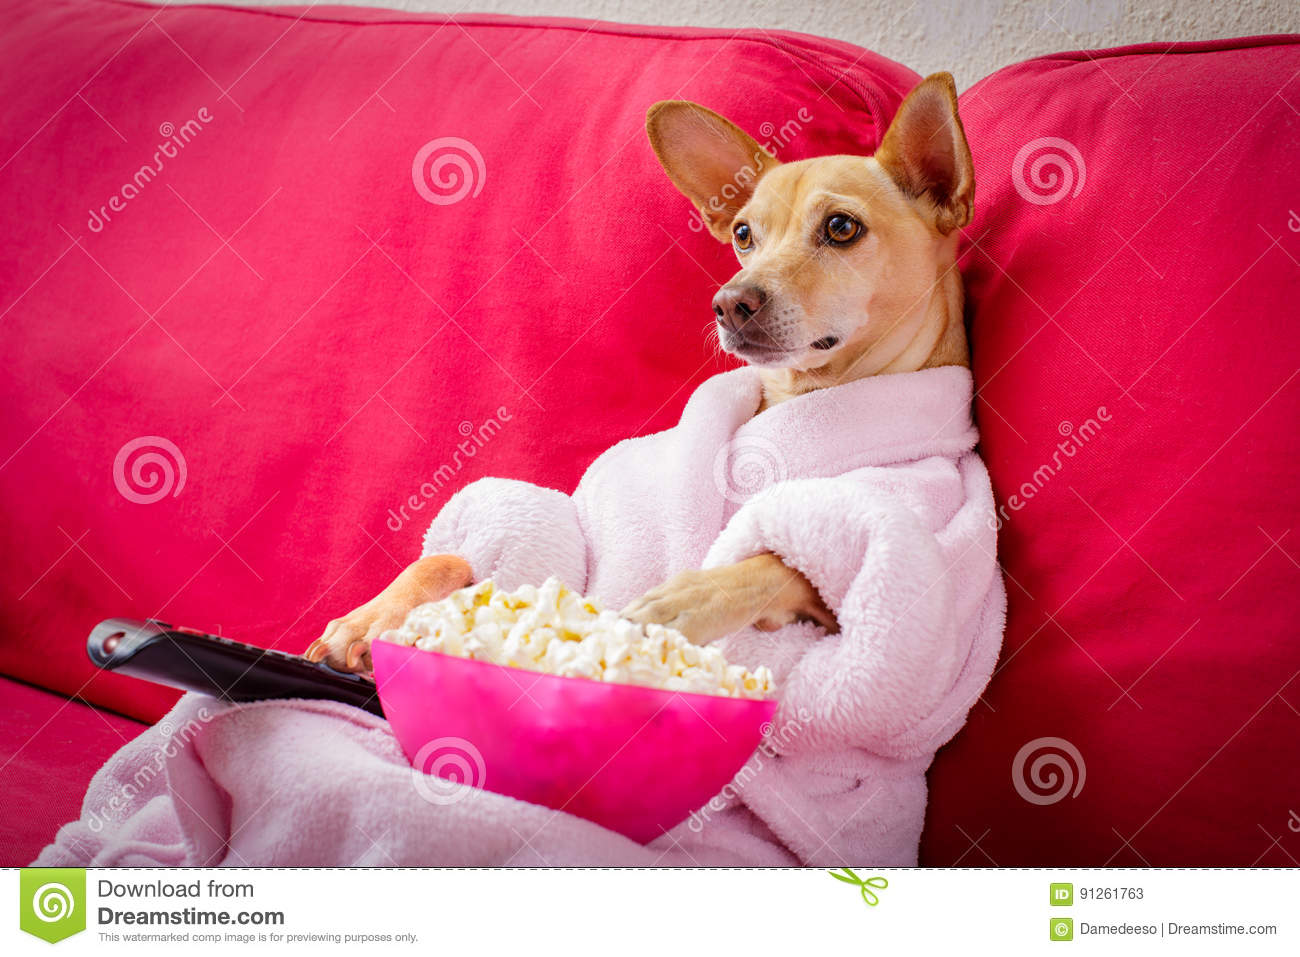 how to get dog tv channel